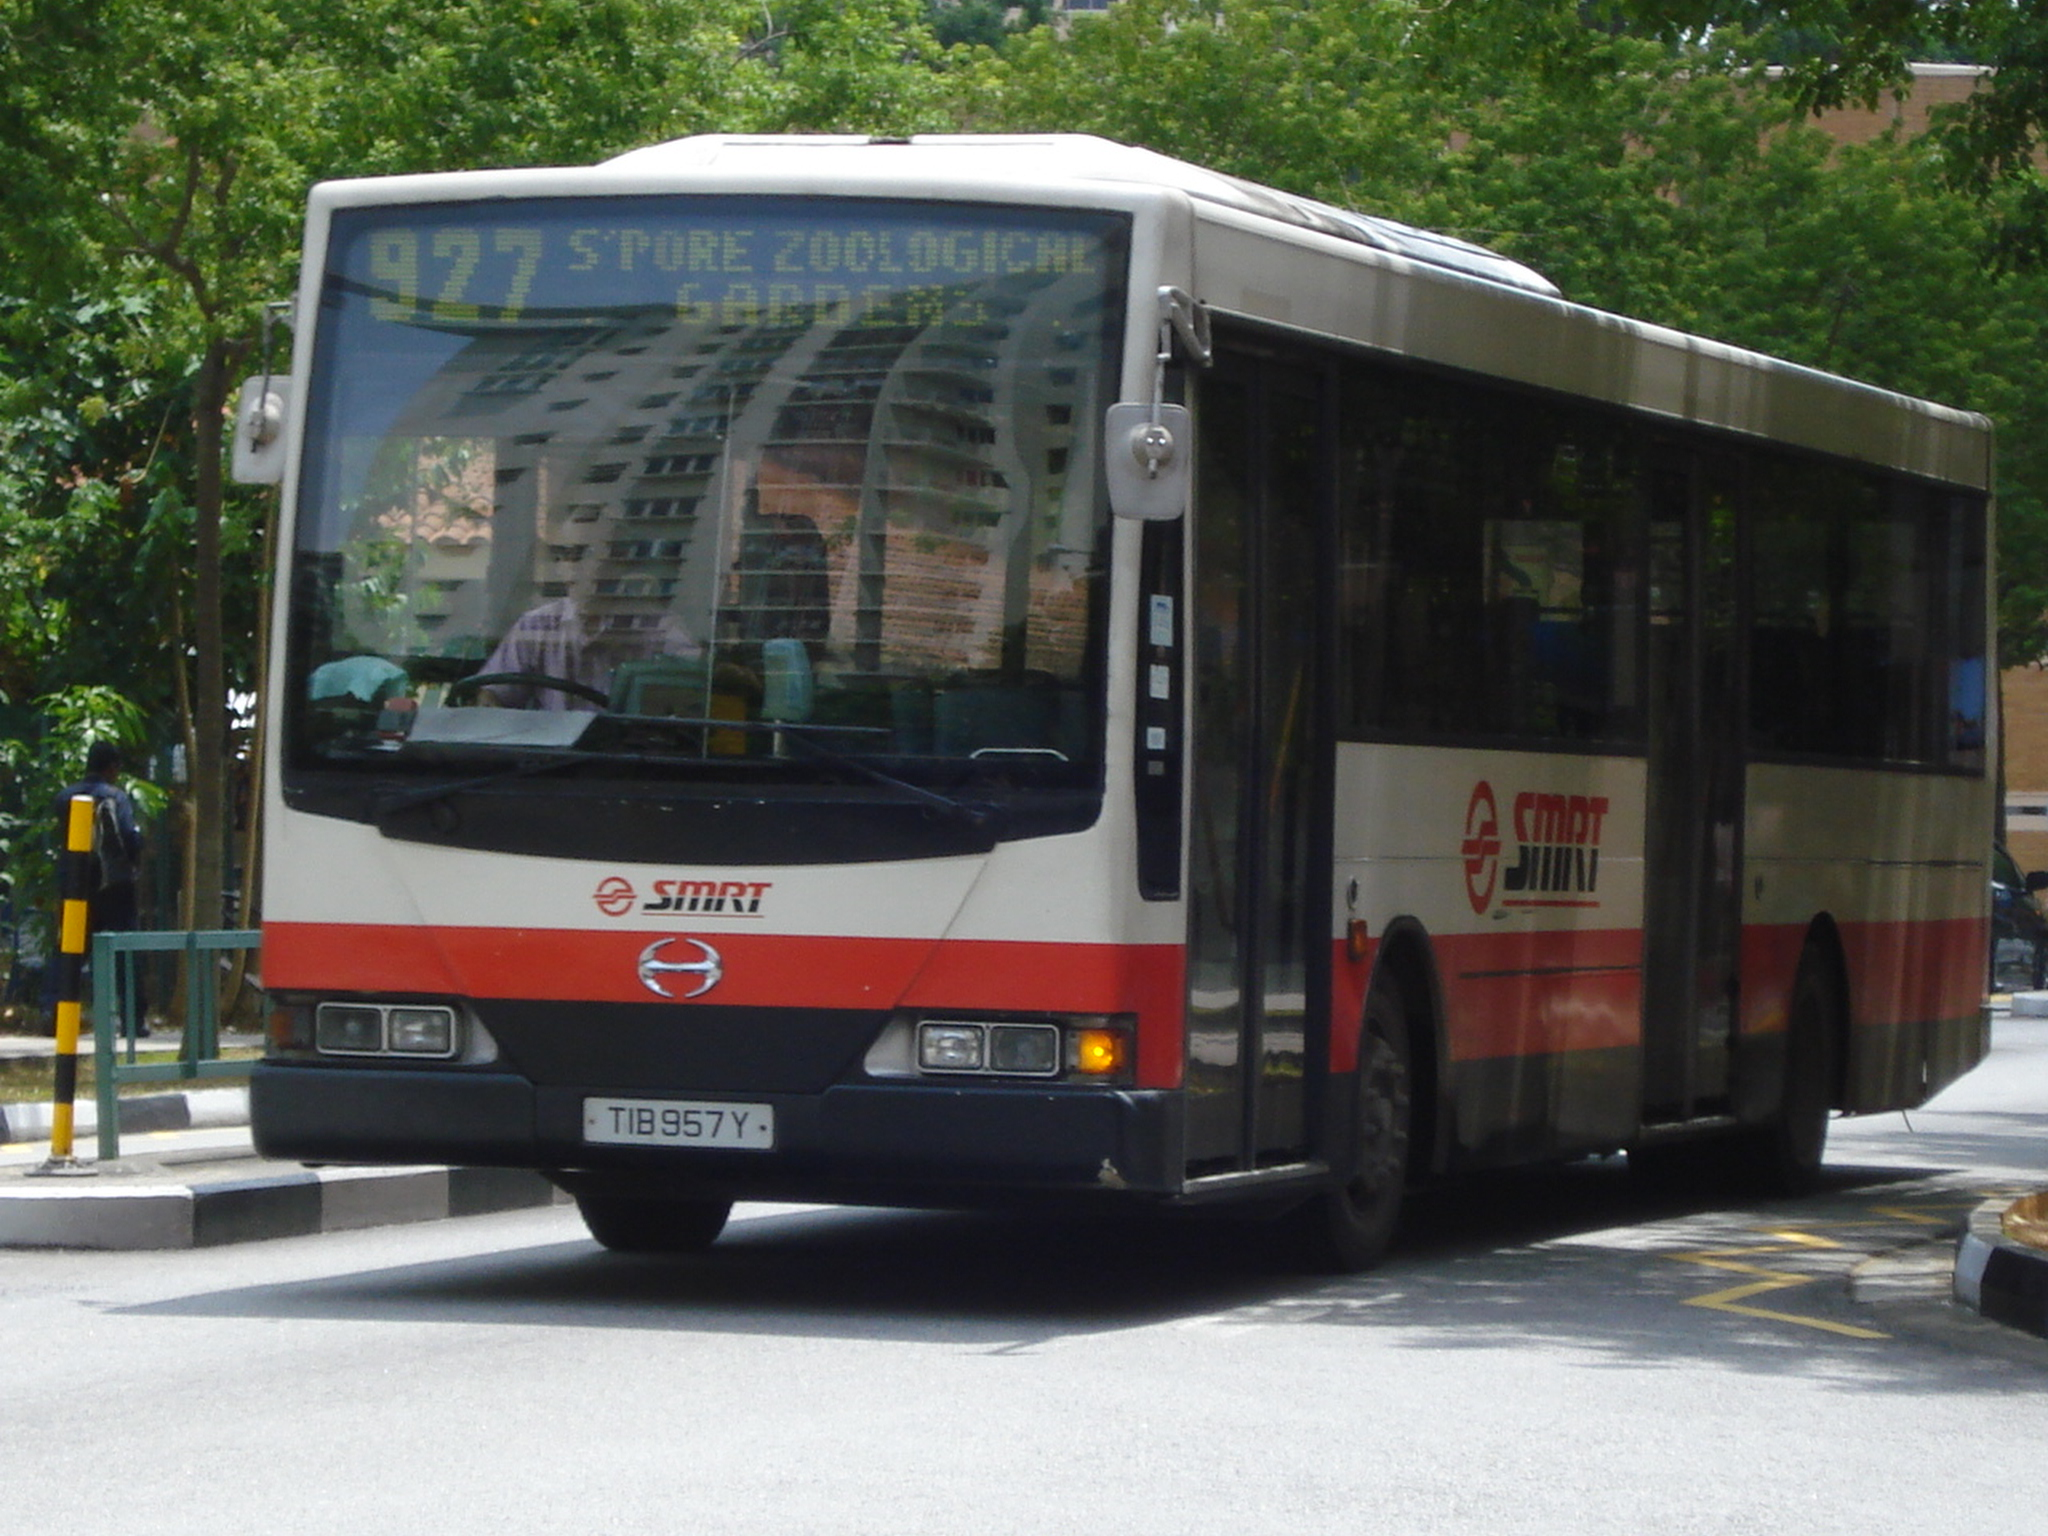 File:SMRT TIB957Y on 927.JPG